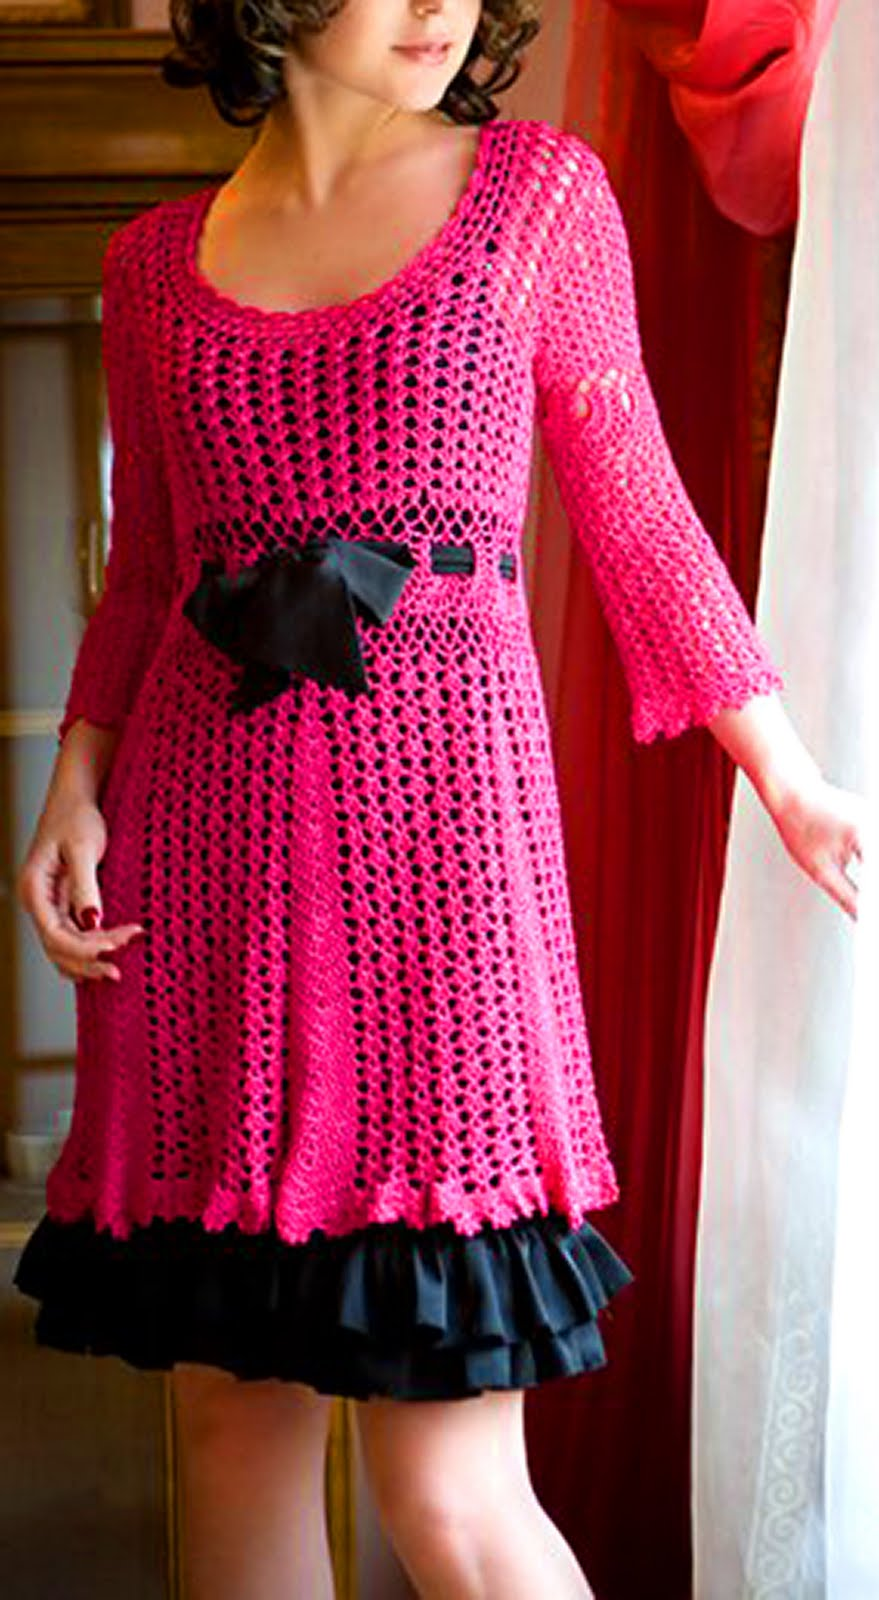 Crochet Clothing : ... dress? Oohhh...I just wanit, wanit, wanit! The design is a Cynthia